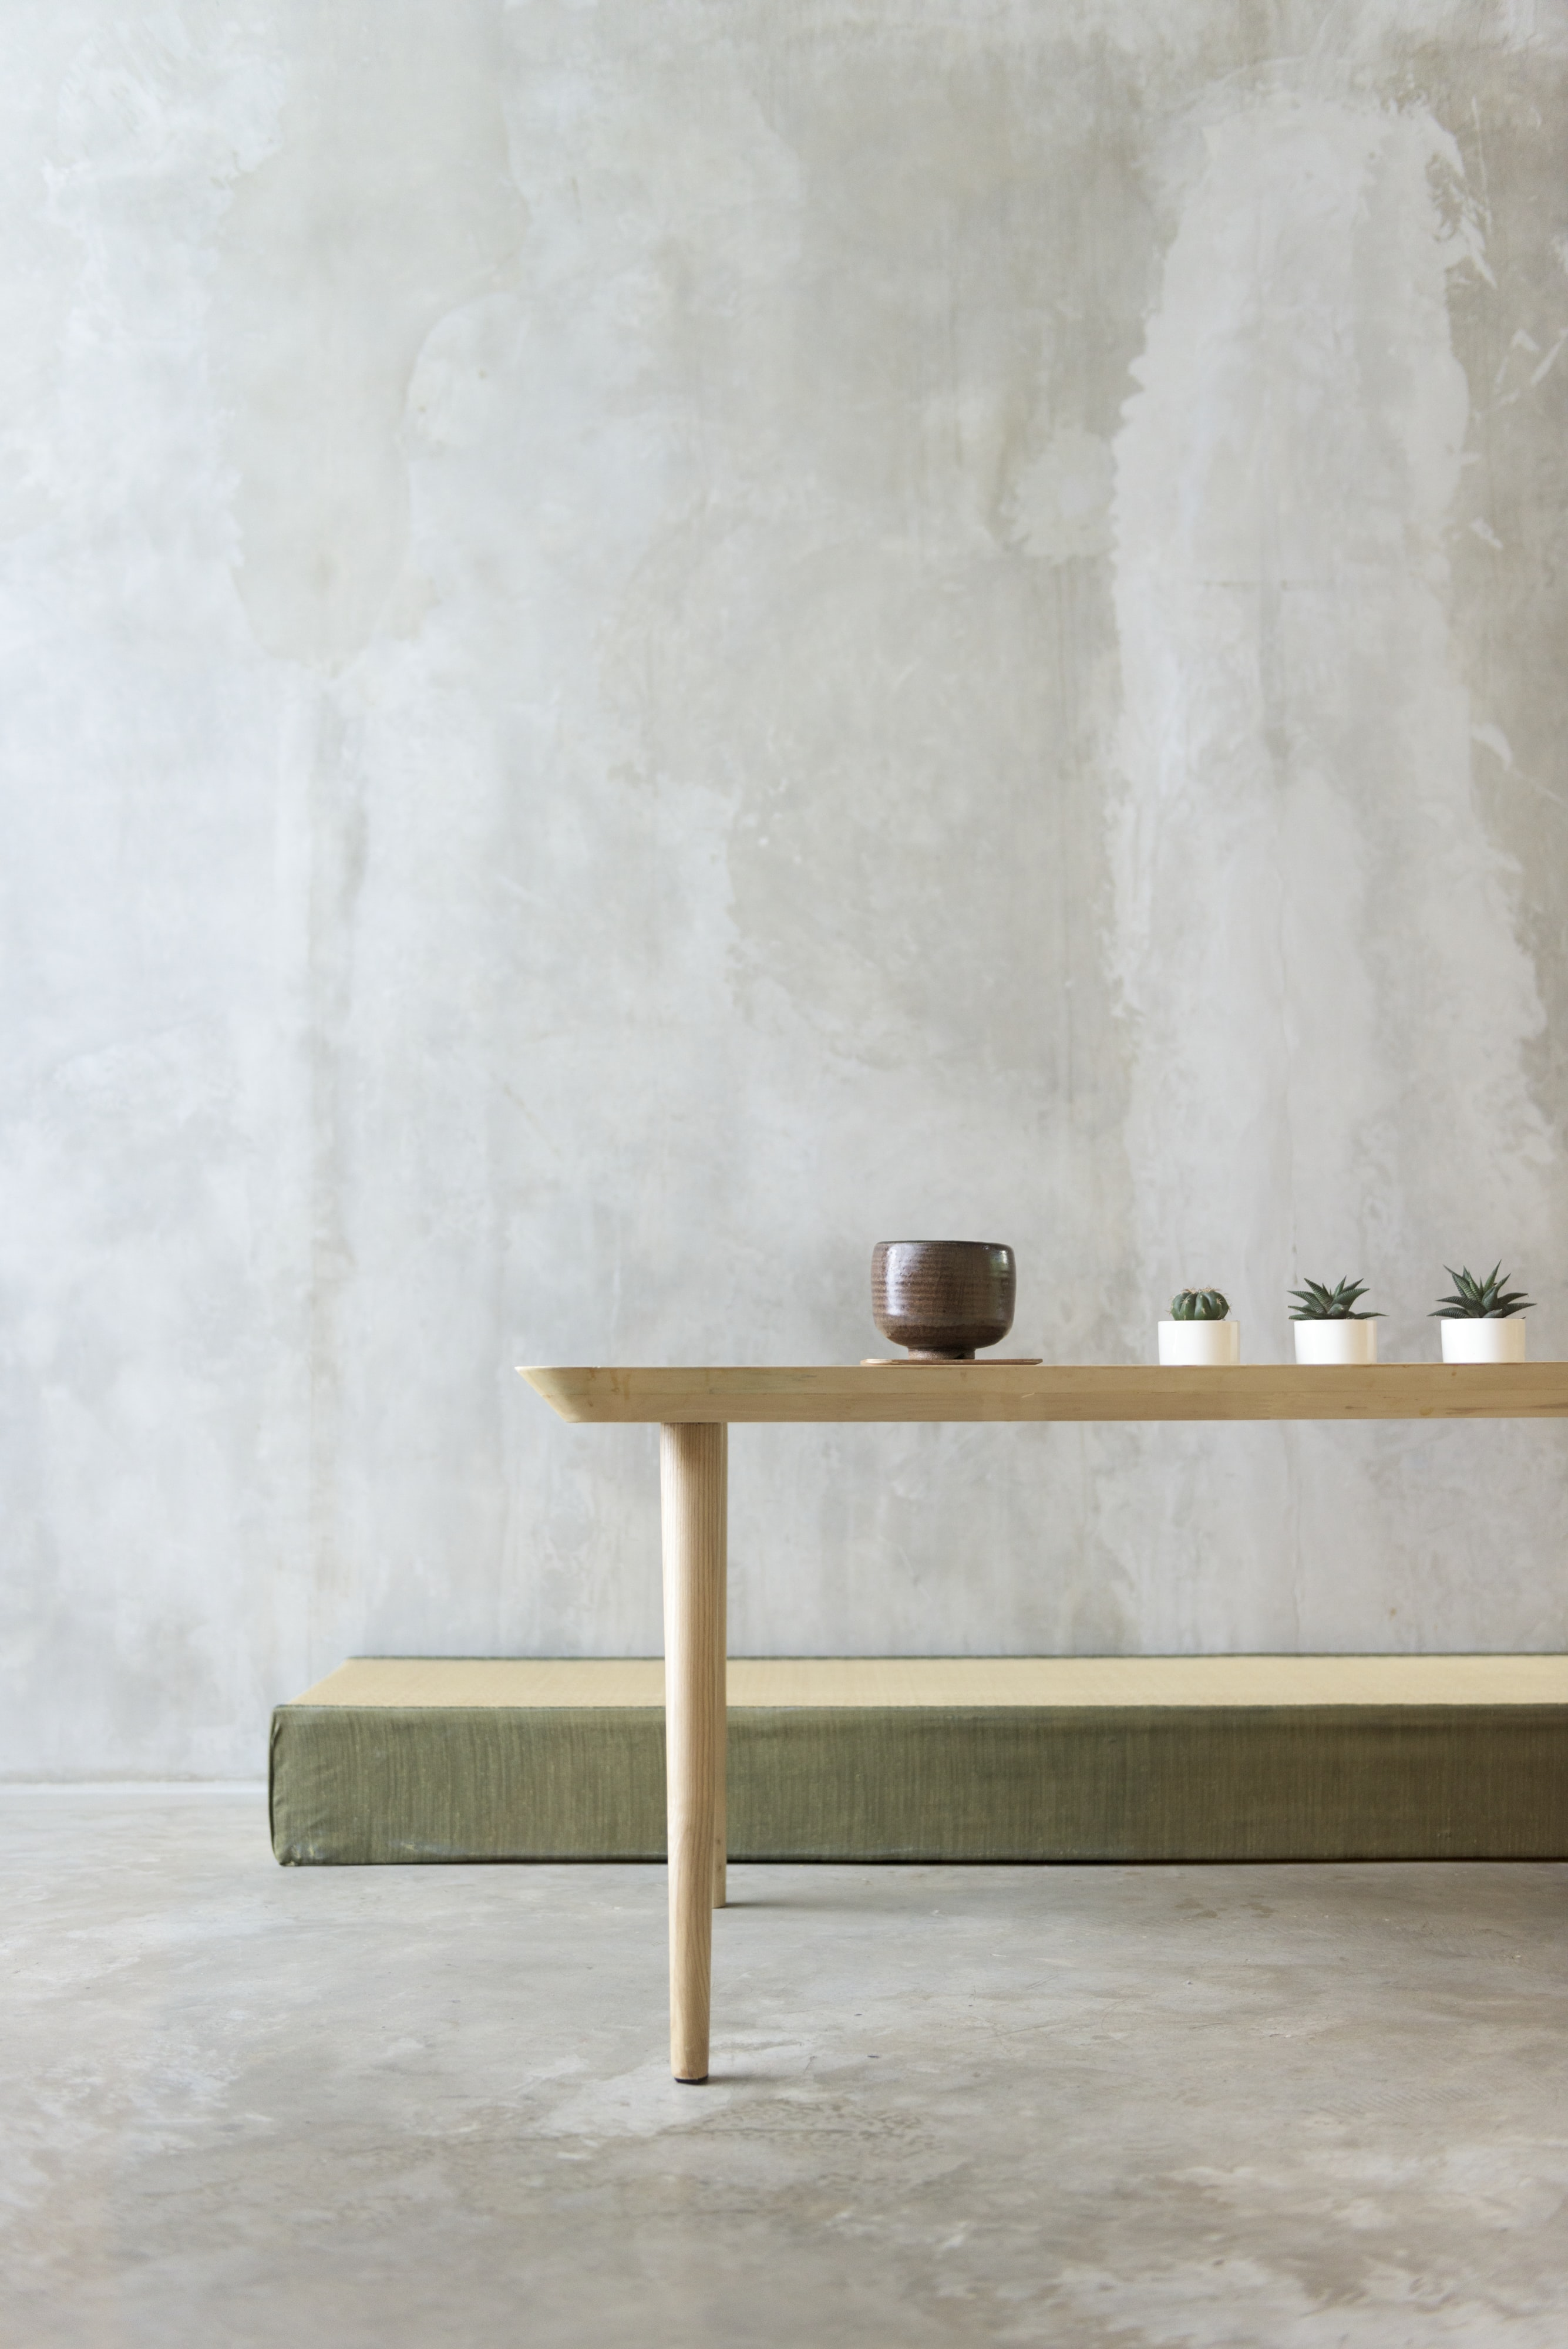 round brown ceramic bowl on beige wooden table